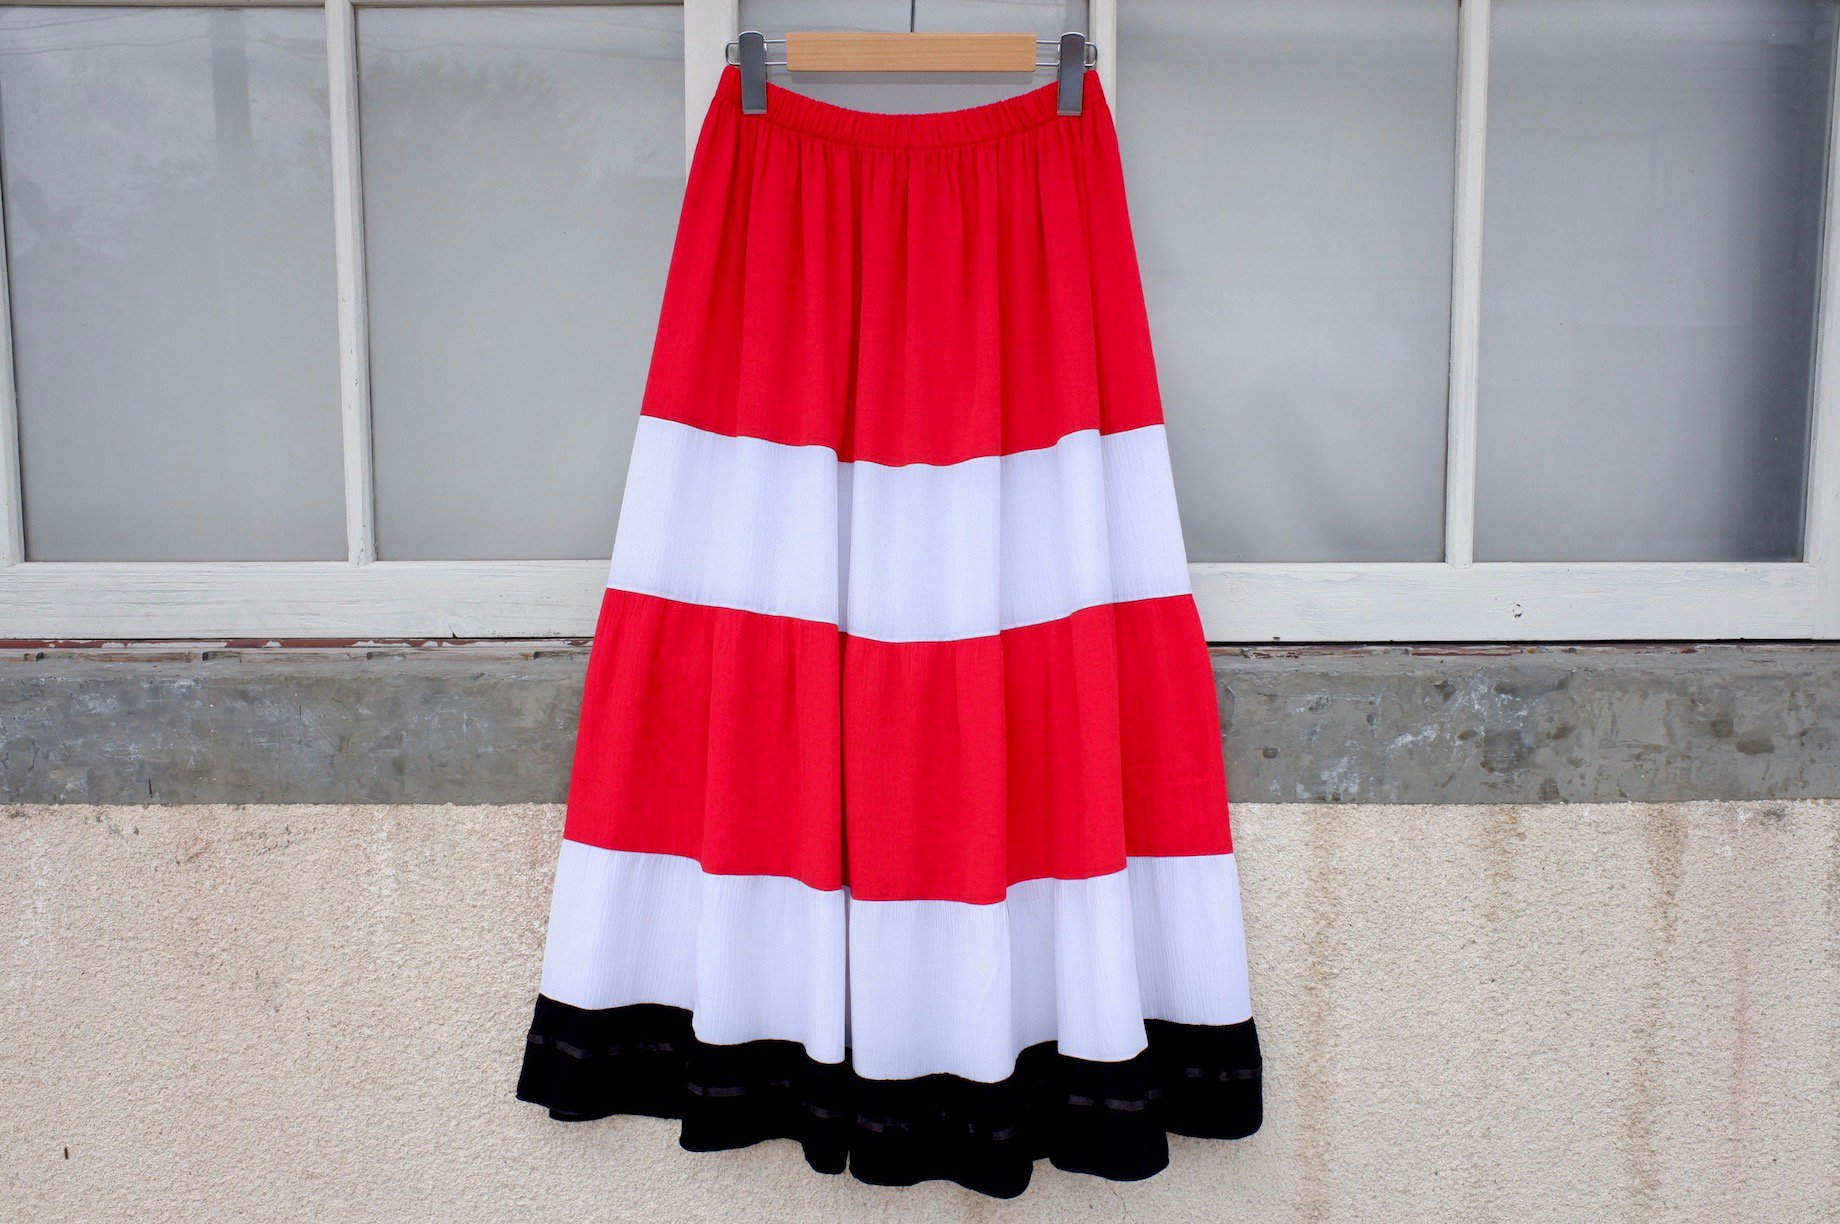 soliloquy procession skirt